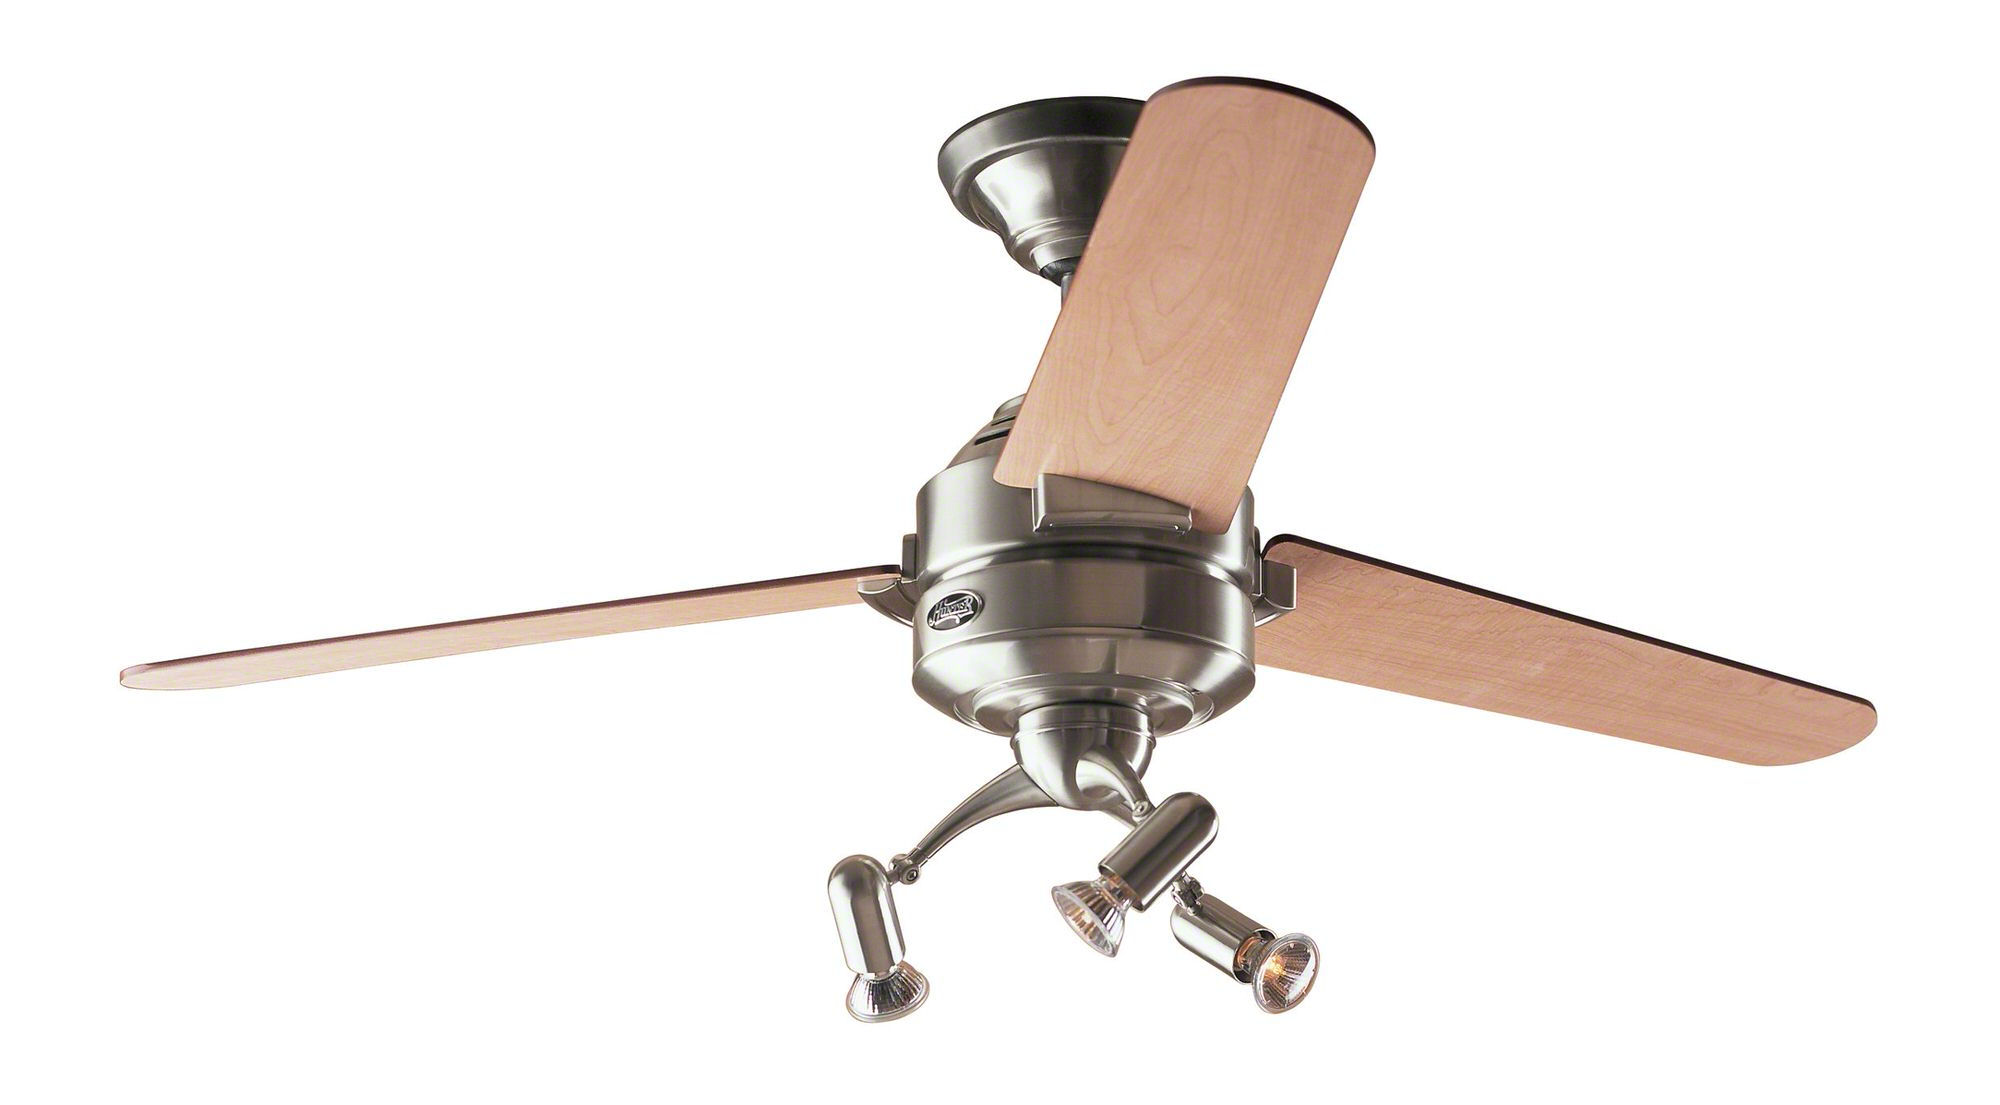 Hunter Carera Ceiling Fan Special Bundle In Brushed Nickel With